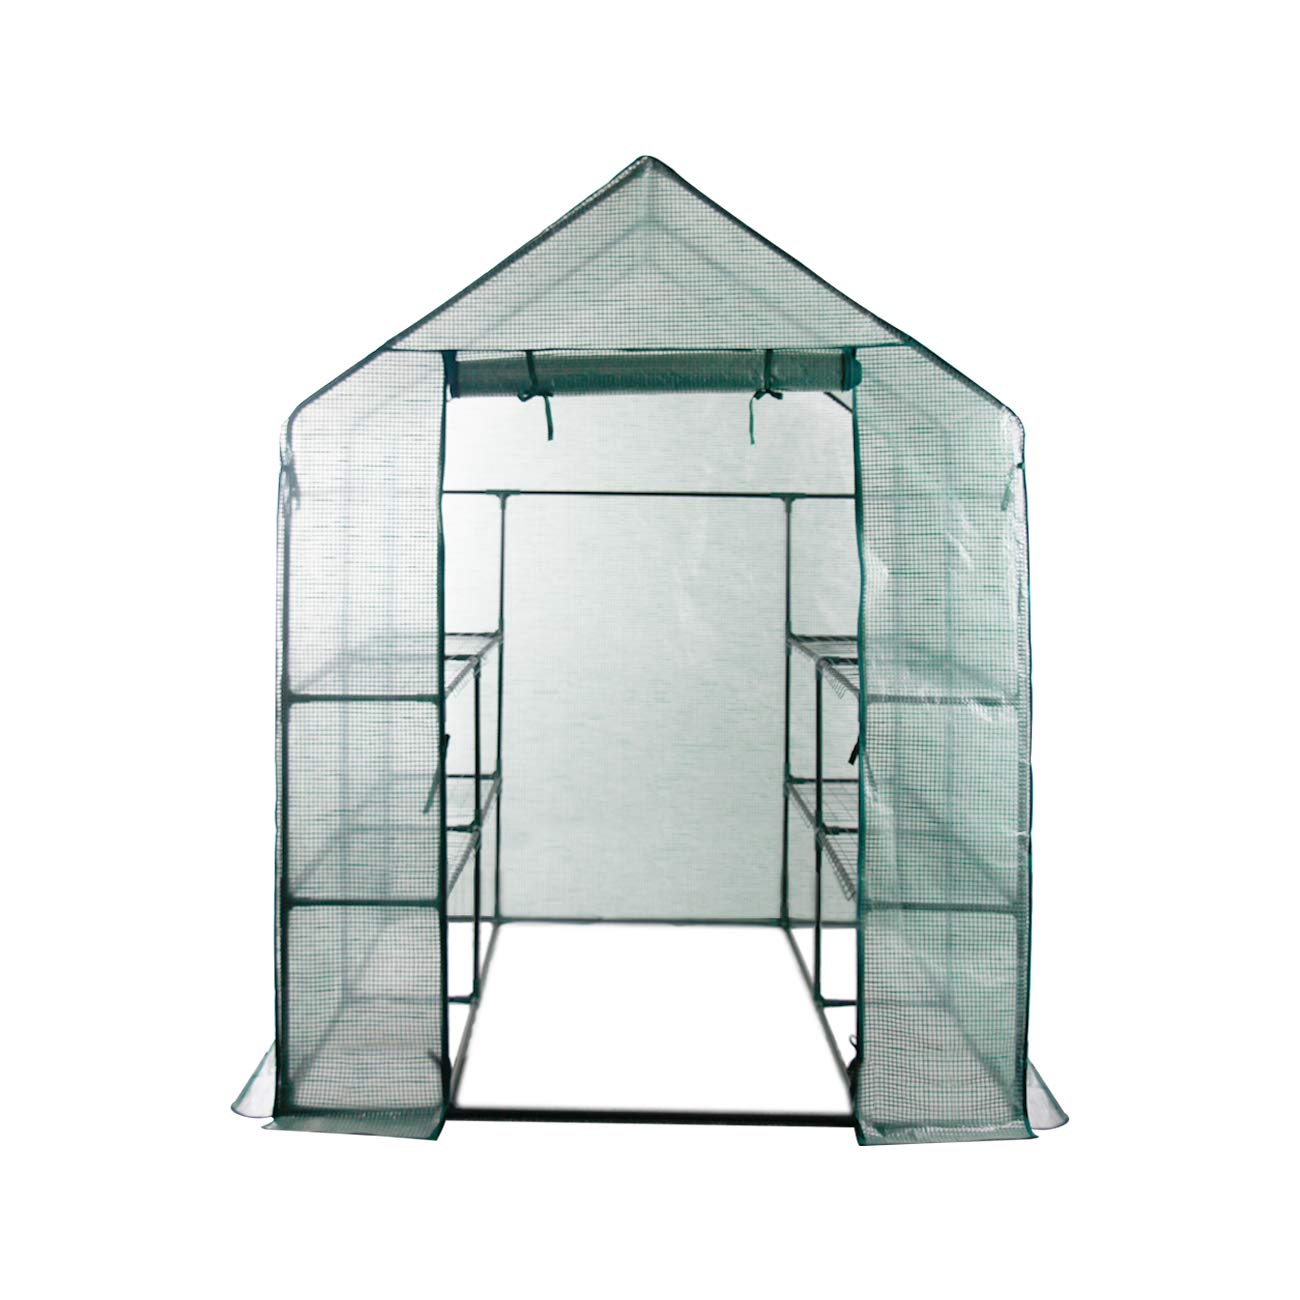 AODAILIHB Reinforced PE Net 6 Layers 8 Shelves Greenhouse Suitable for Lawn and Garden Steel Structure Assembly, 8 Fixed Buttons 4 Floor Fasteners, H x L x W:76.77 x 56.29 x 56.29 inch (02)